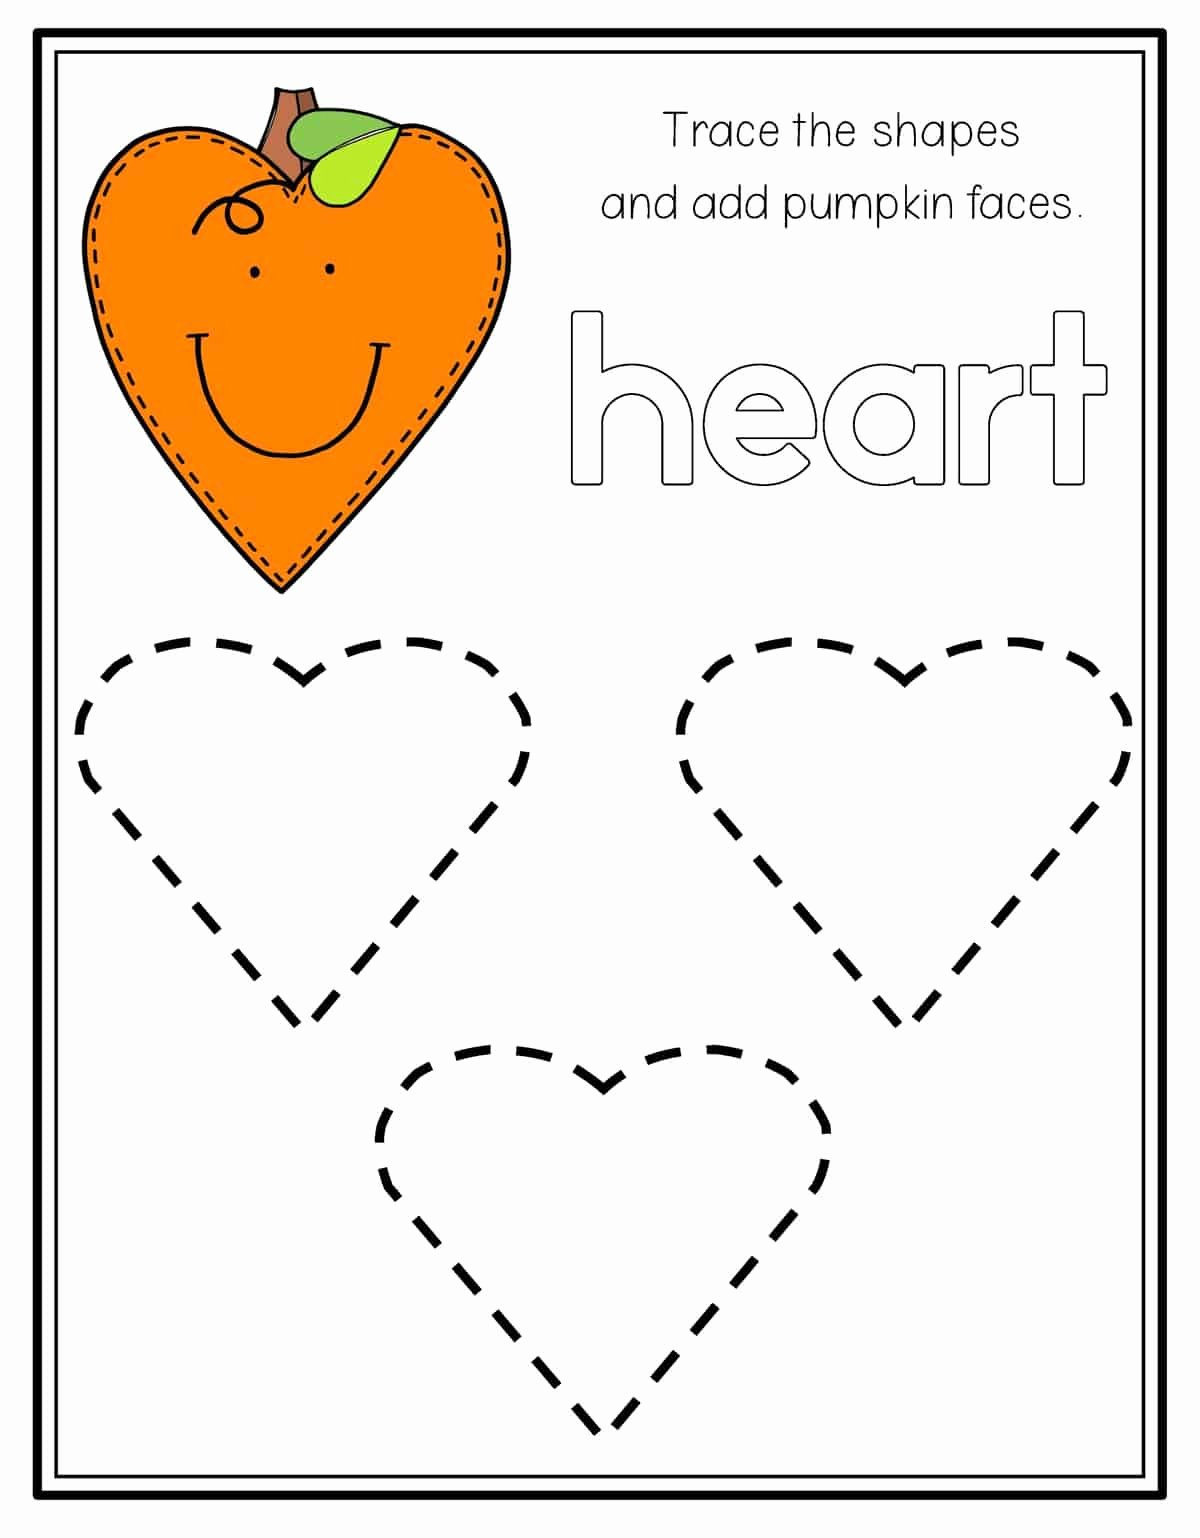 Heart Shape Worksheets for Preschoolers New Shapes Archives Preschool Mom